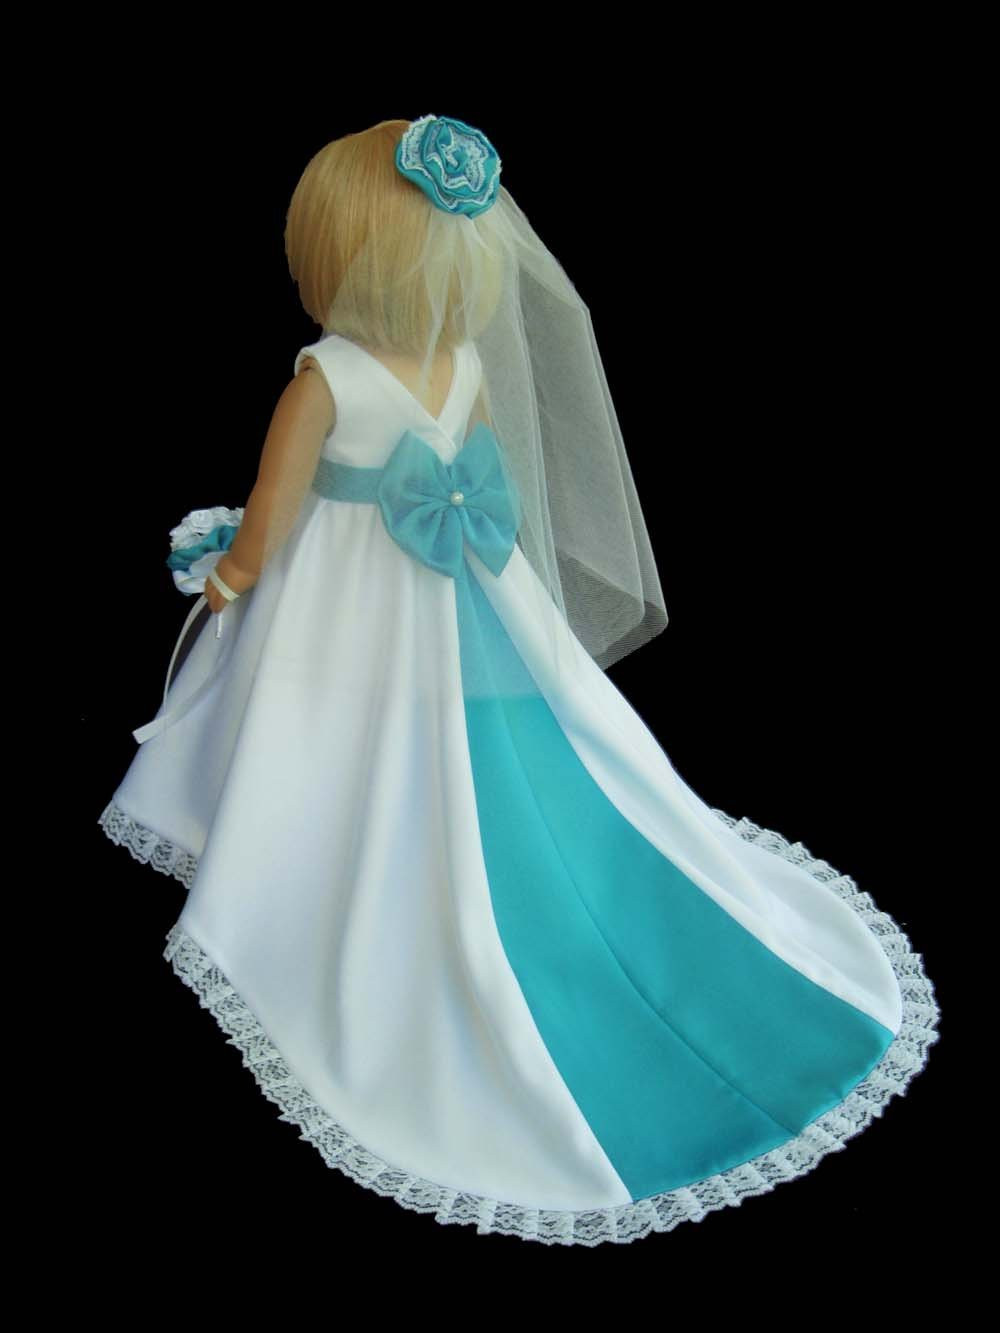 Best Of 301 Moved Permanently American Girl Doll Wedding Dress Of Awesome 39 Photos American Girl Doll Wedding Dress